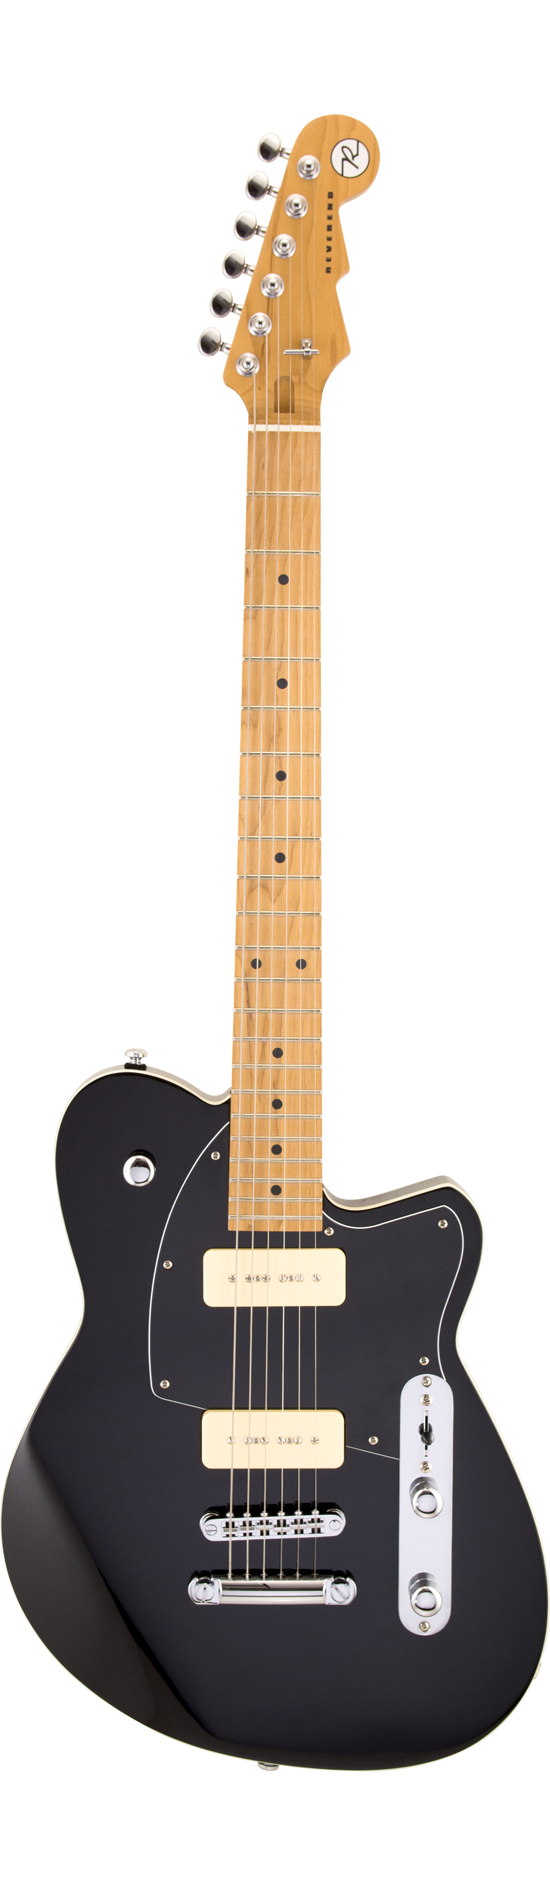 Reverend Guitars Charger 290 Midnight Black